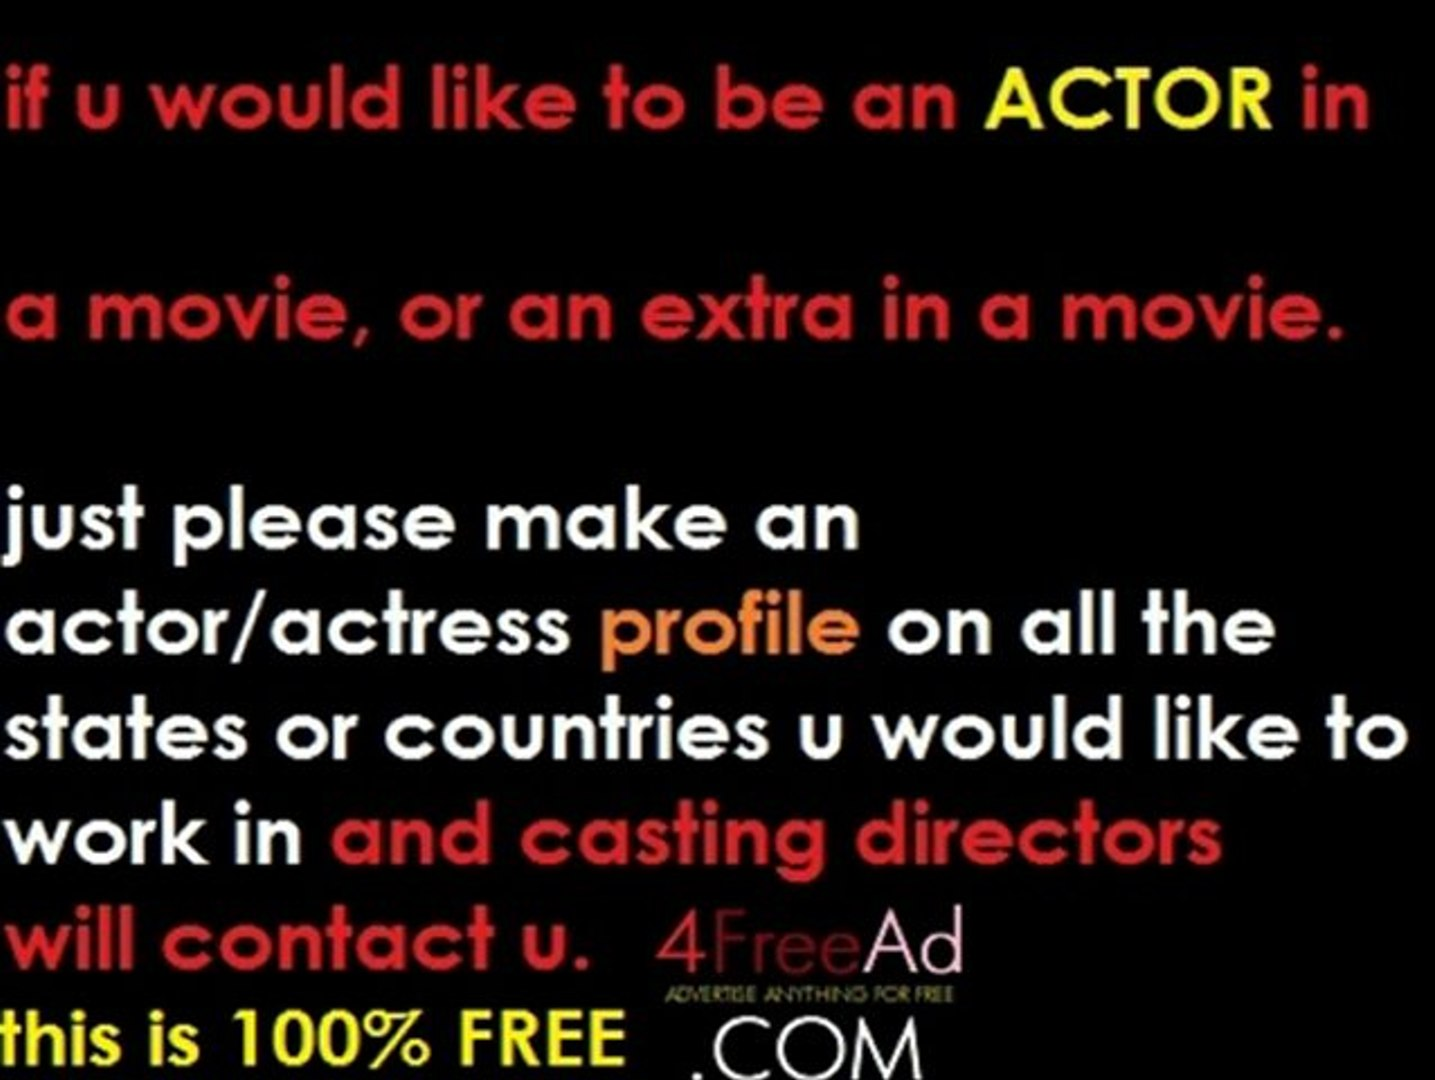 open casting calls in new york, casting directors in nyc, casting calls in LA, post free movie audit